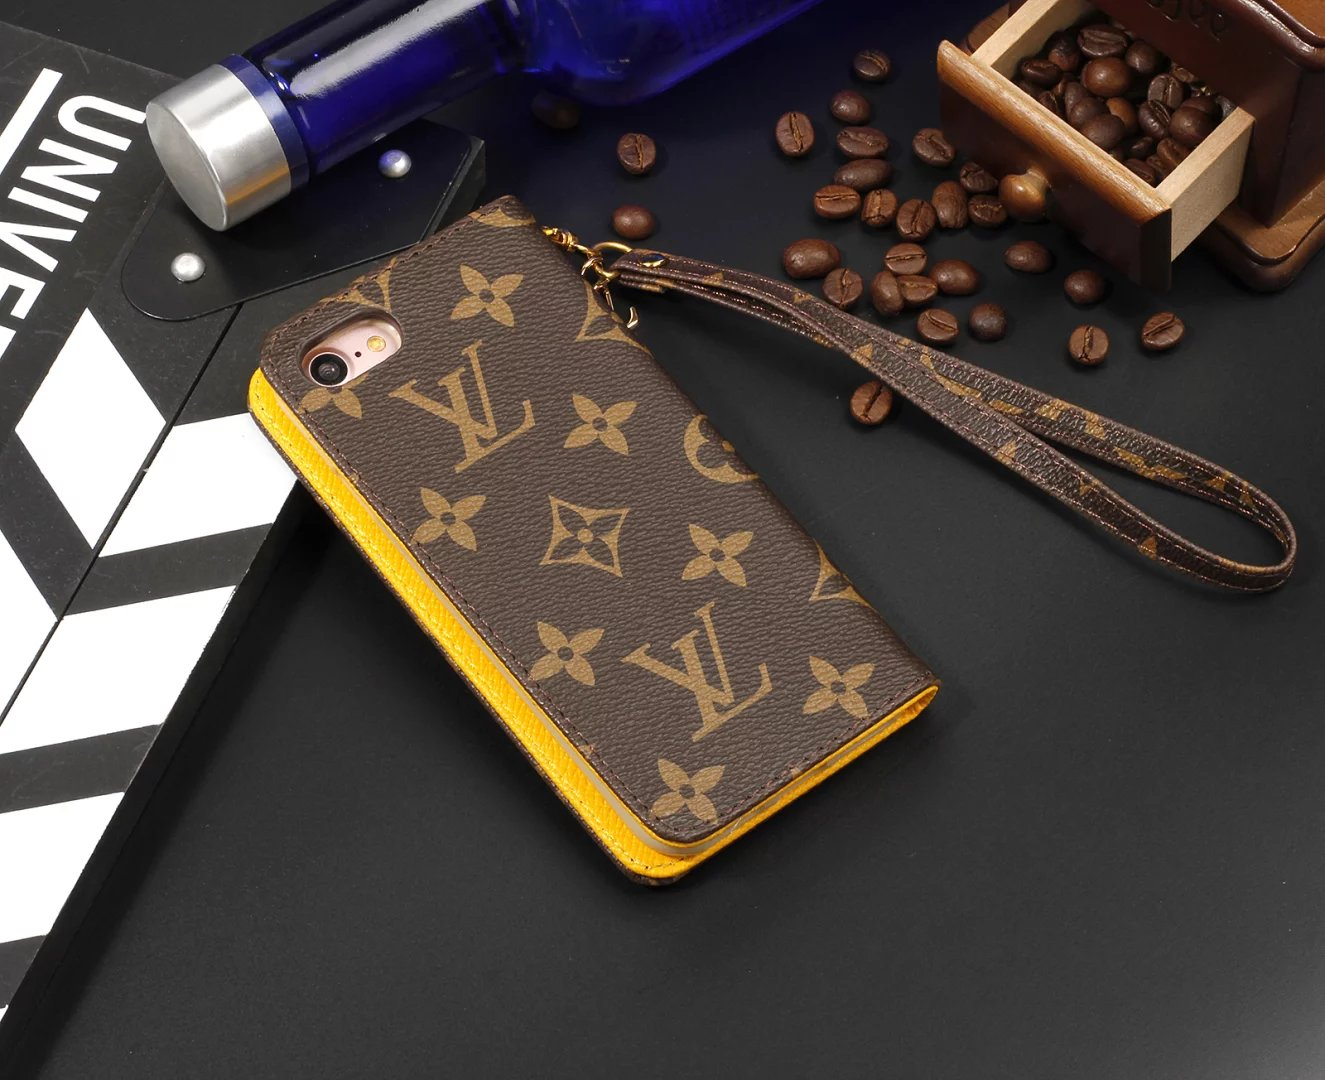 apple covers for iphone 8 custom iphone 8 cases cheap Louis Vuitton iphone 8 case cover iphone 8 case 8 phone cases for iphone 8 designer custom iphone 8 cases cheap iphone 8 fashion cases iphone 8 cases apple